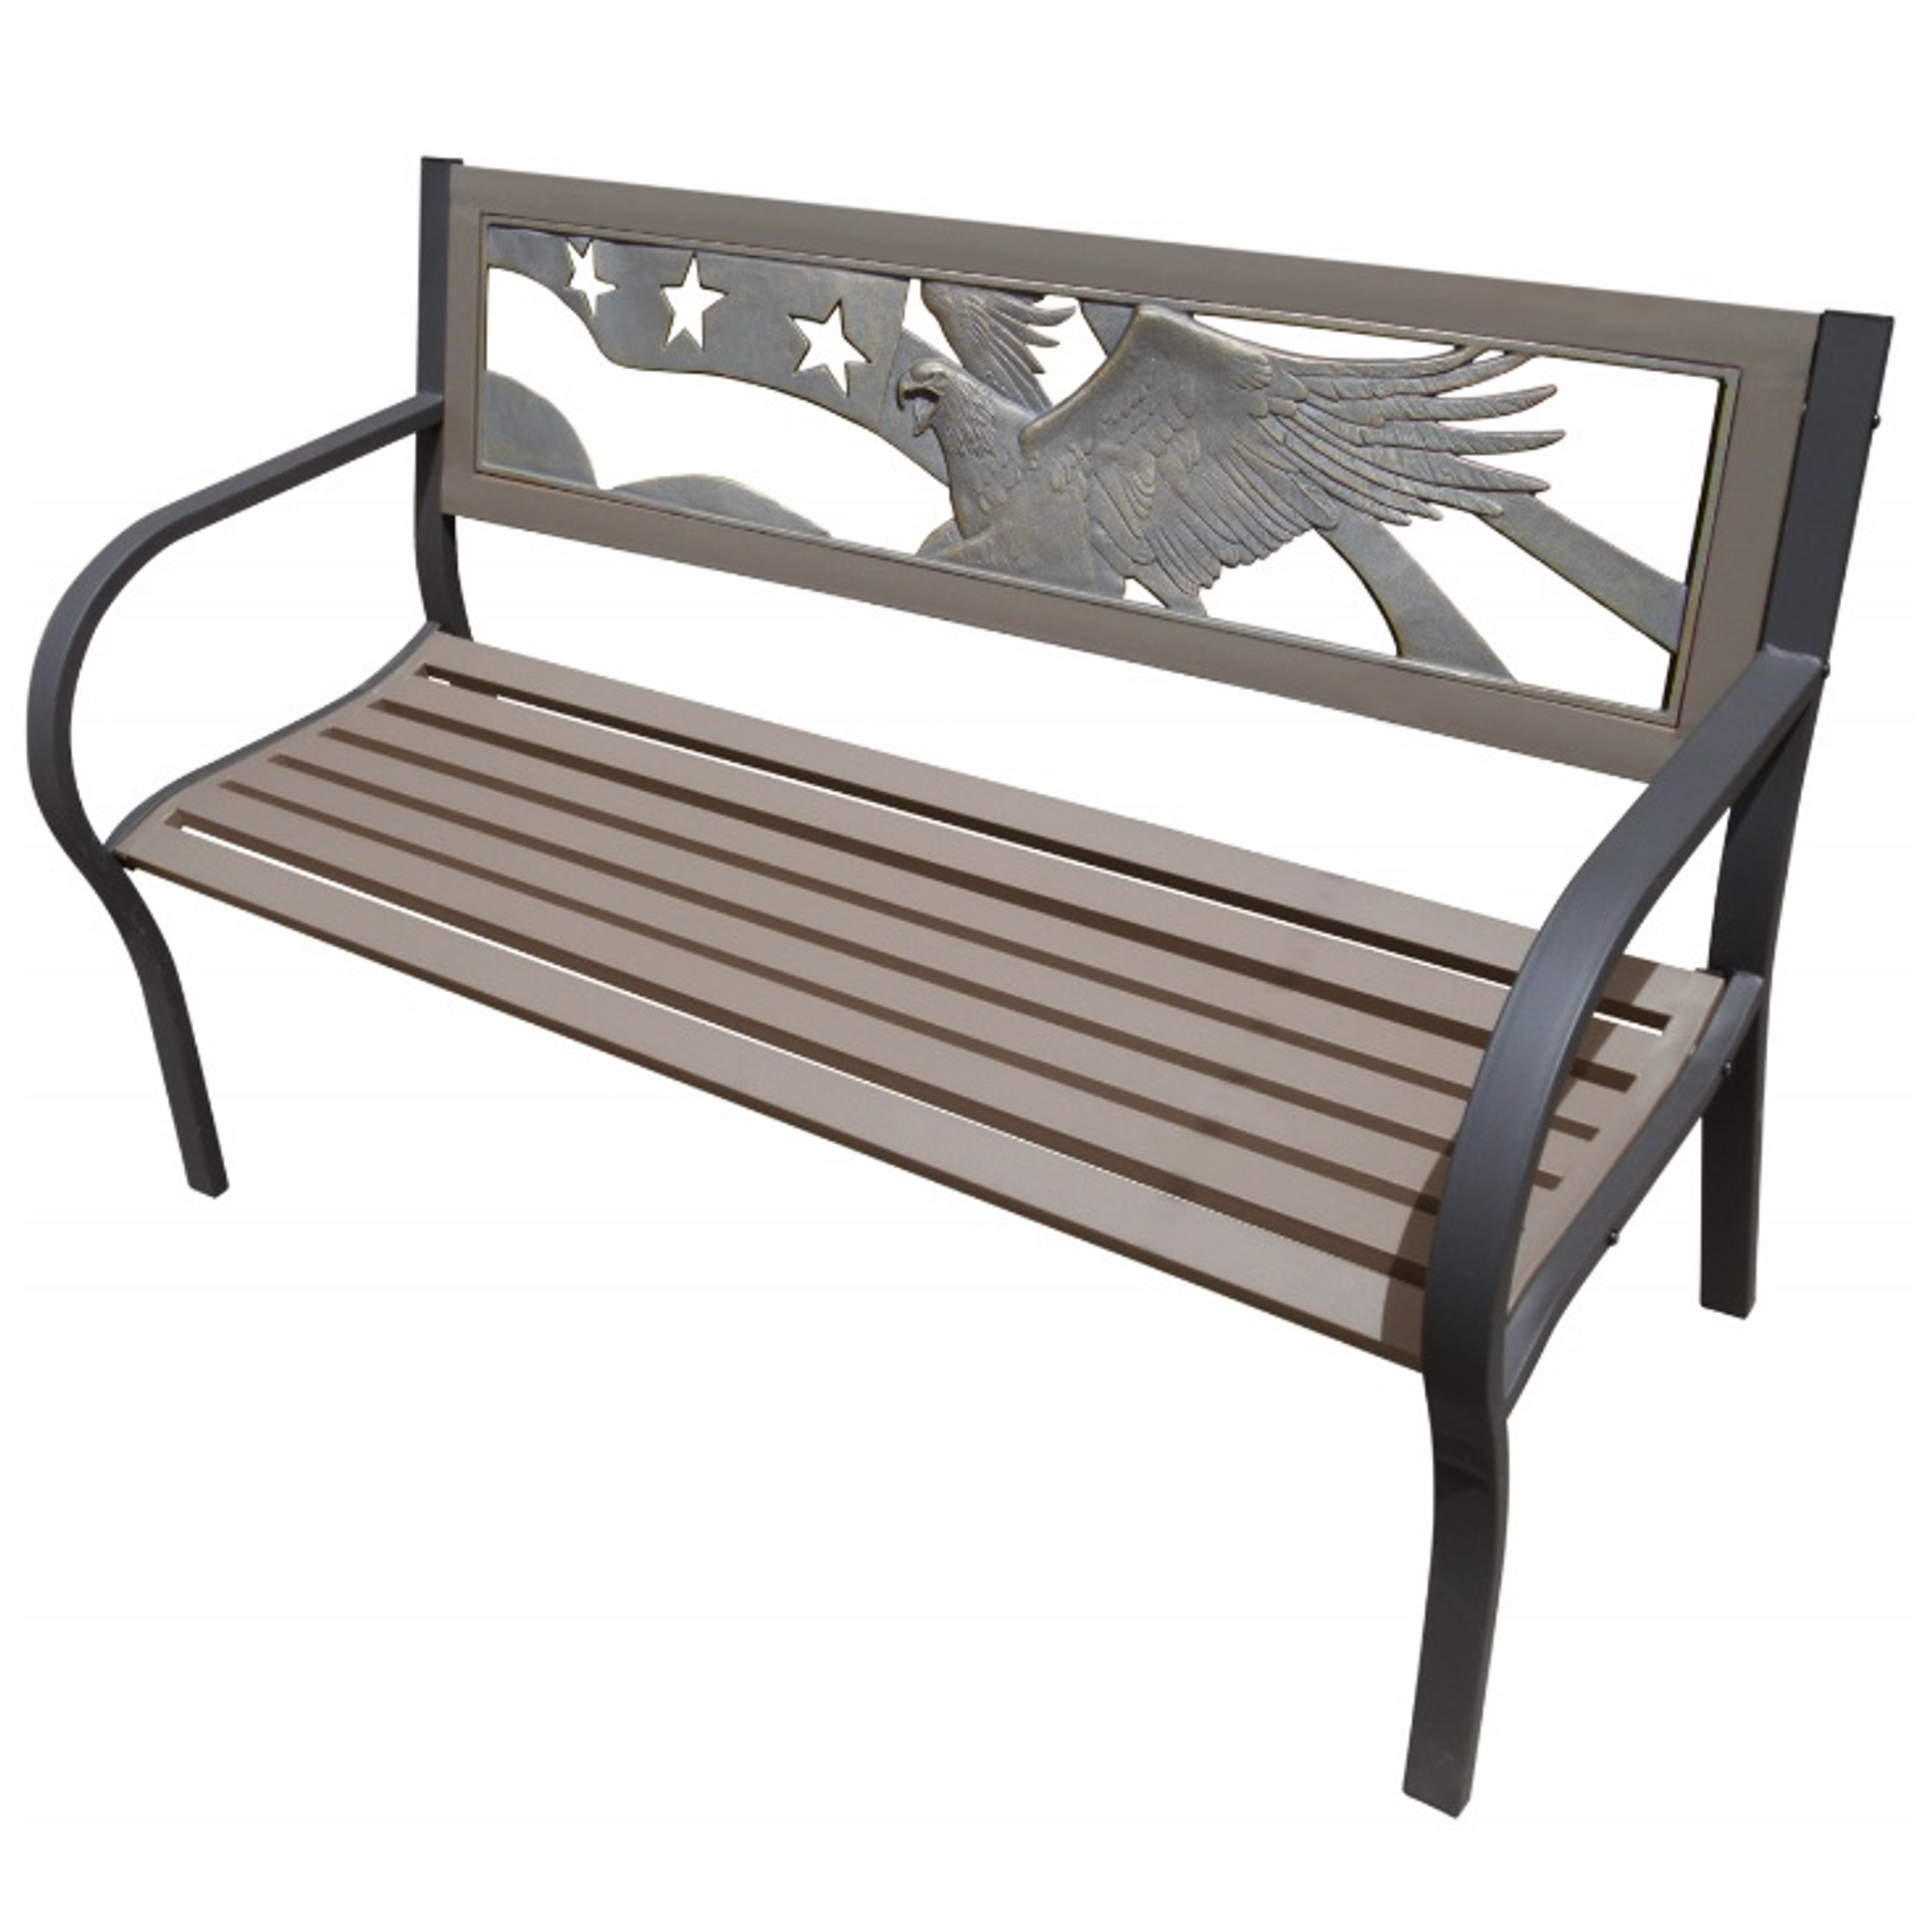 Phenomenal Eagle Flag 2 Tone Tube Steel Outdoor Bench Gmtry Best Dining Table And Chair Ideas Images Gmtryco